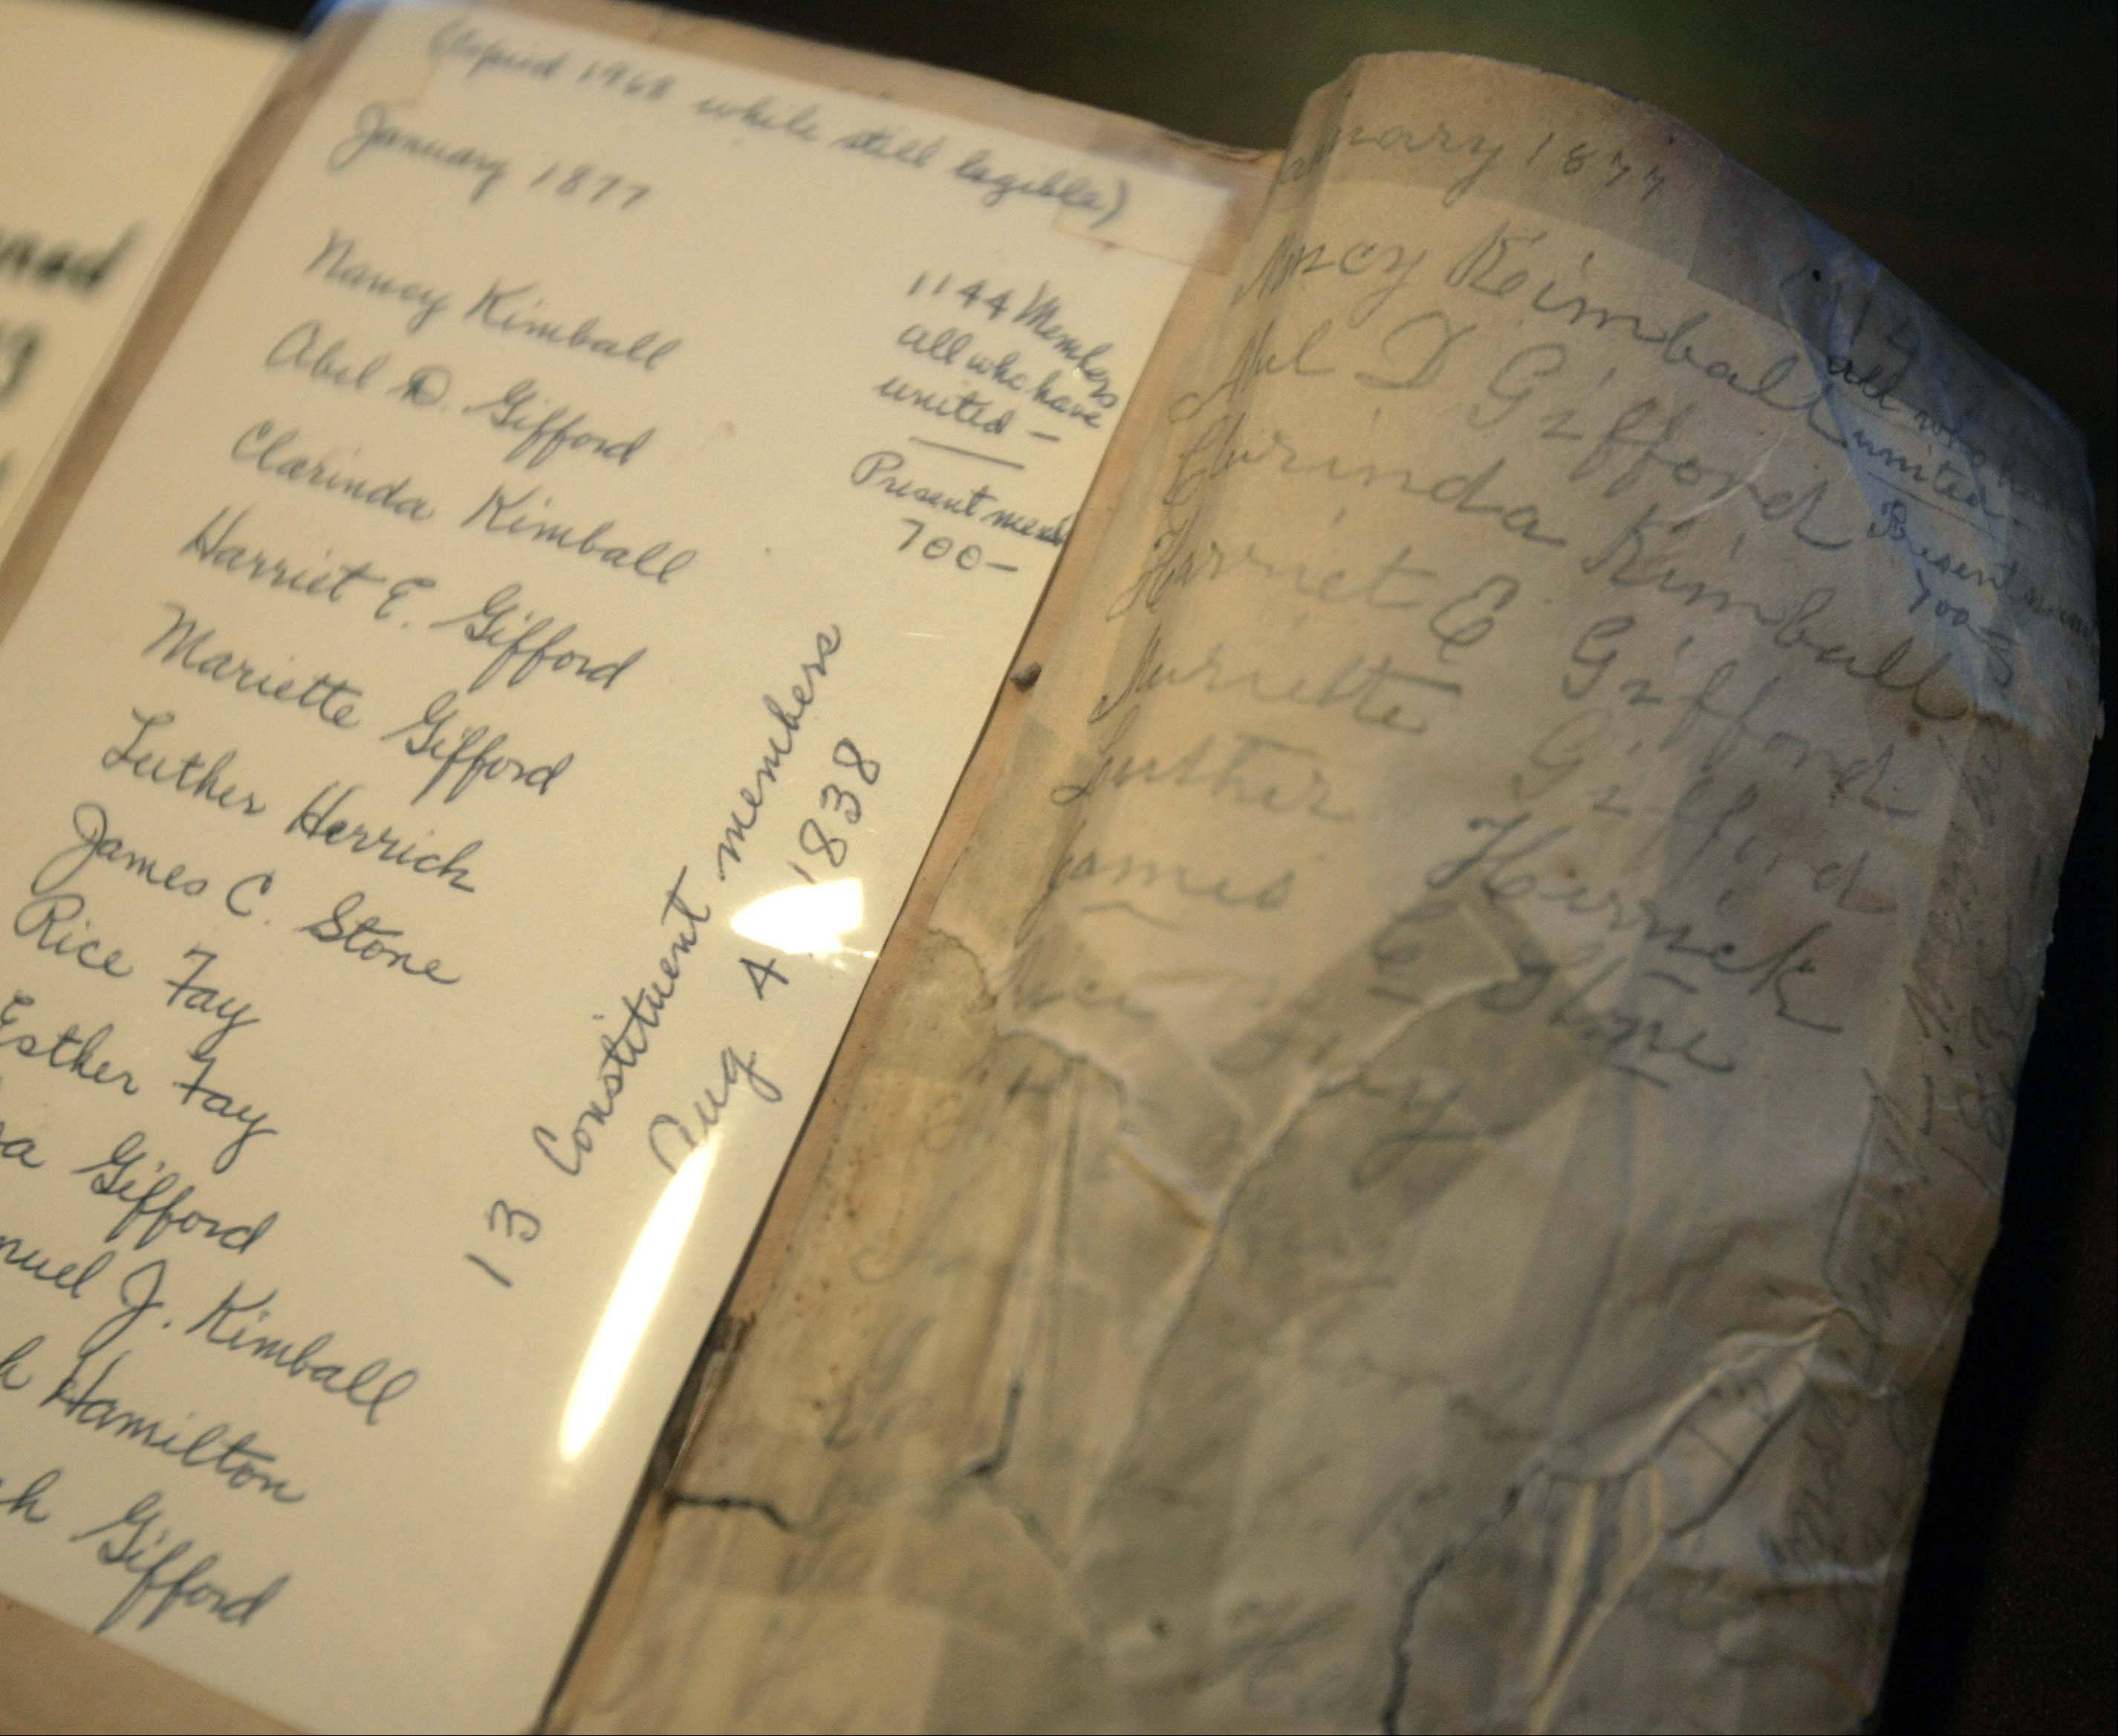 An original Bible with the signatures of the 13 founding members of the First Baptist Church in Elgin. The church was founded July 14, 1838, when 13 men and women got together in Hezekiah Gifford's log cabin. The Giffords were pioneer settlers of Elgin.